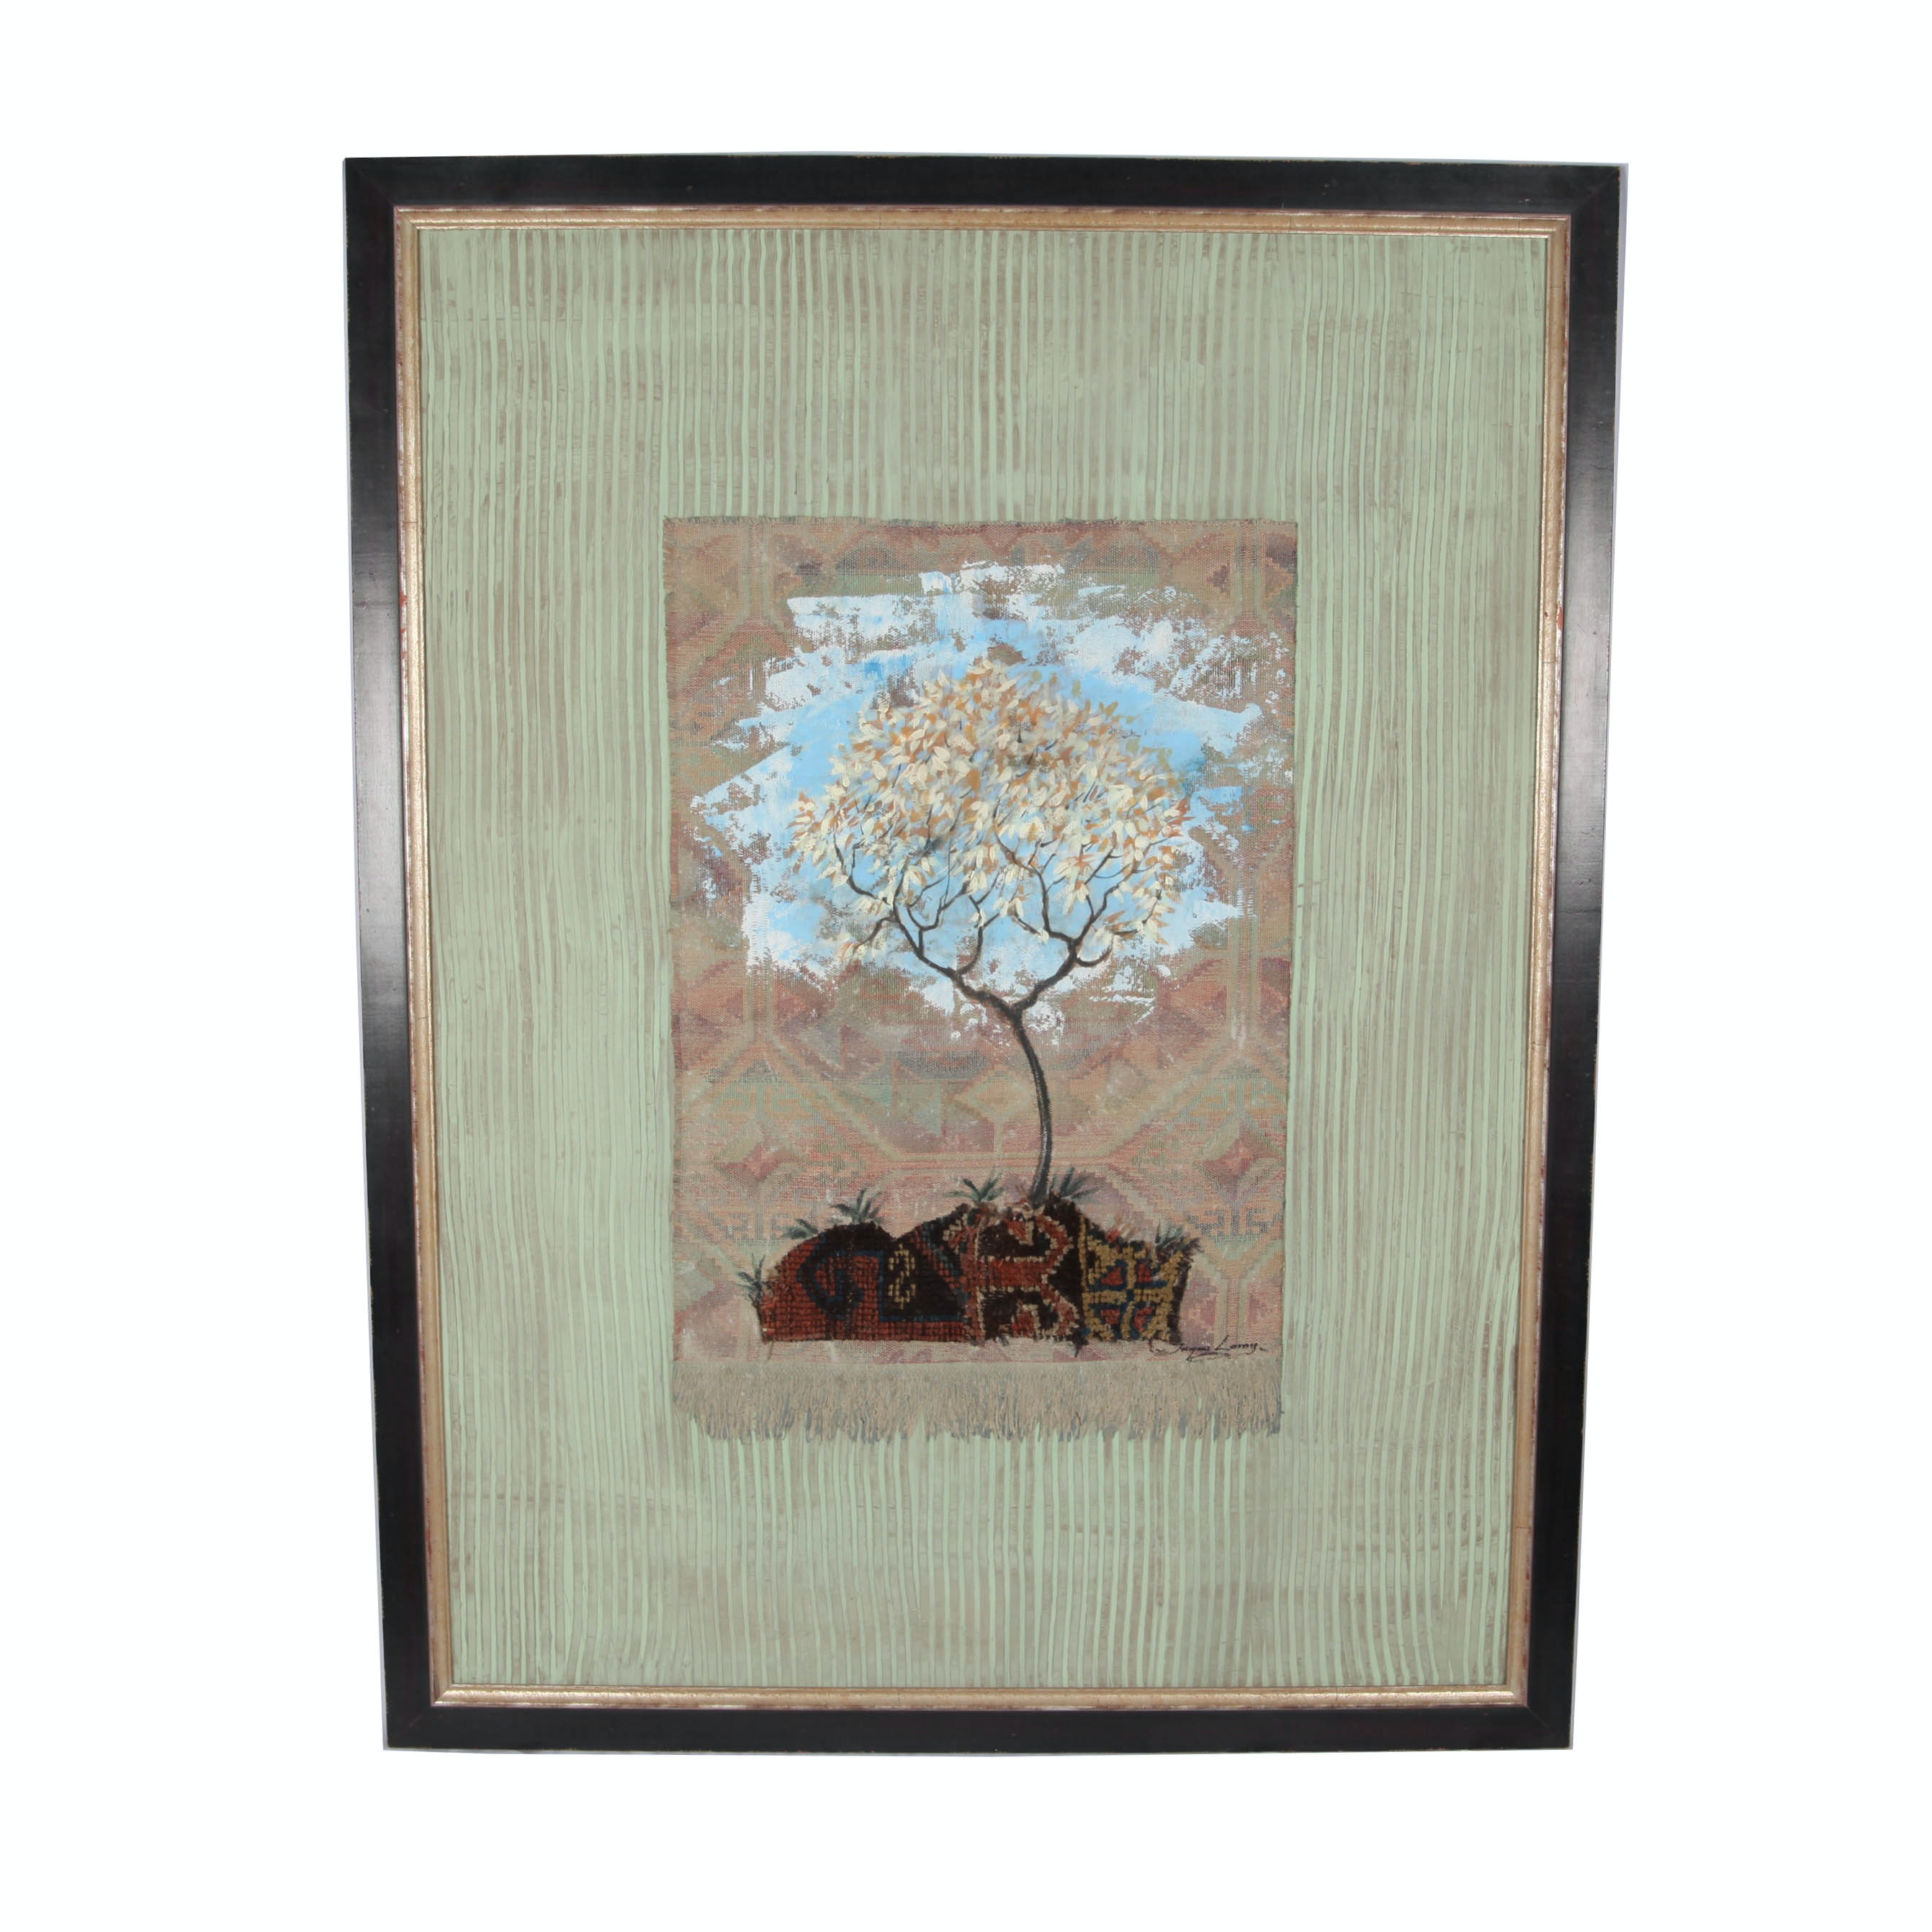 Jacques Lamy Contemporary Mixed Media Painting of Autumn Tree